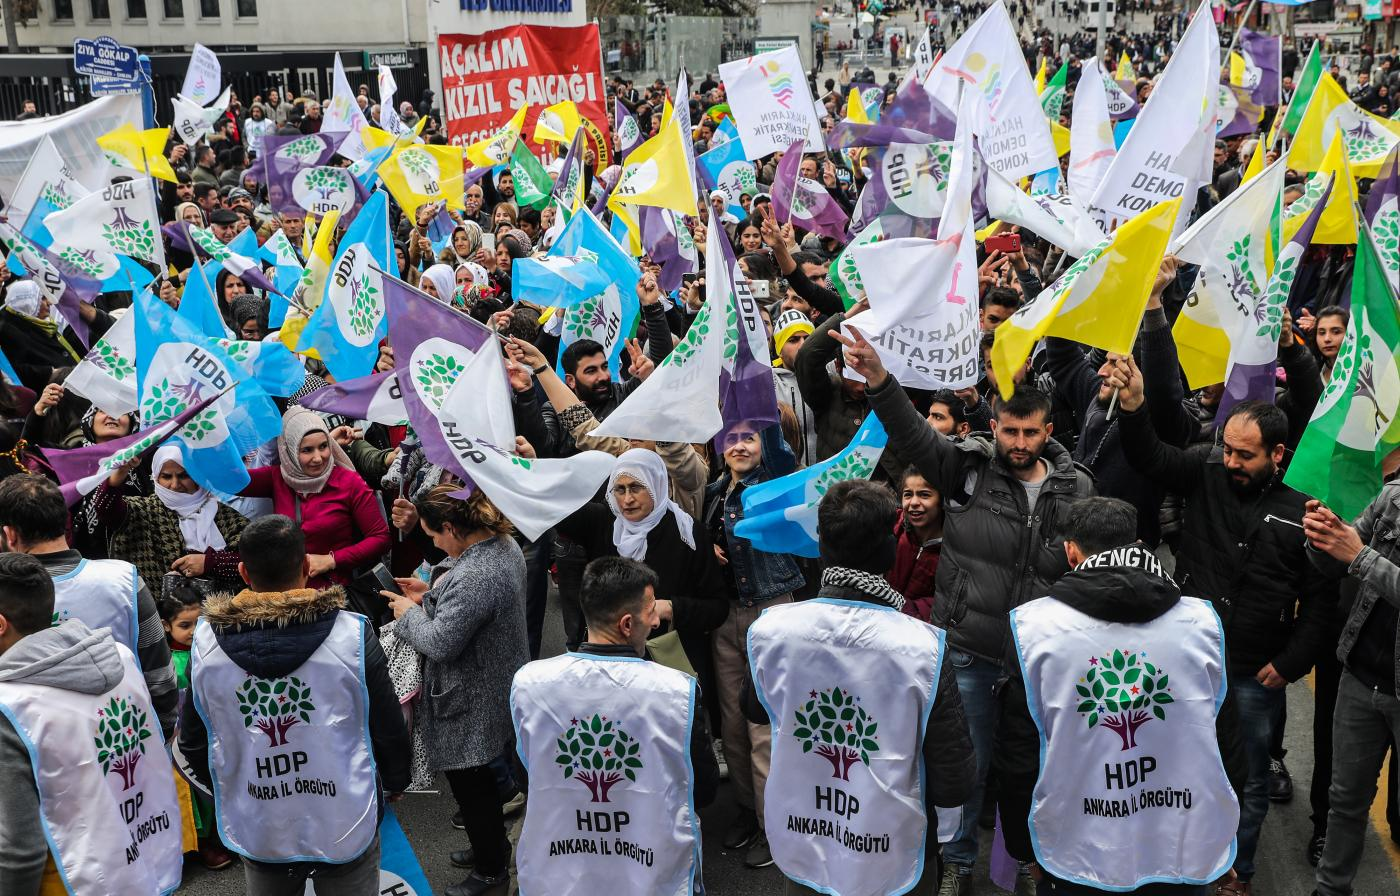 HDP supporters rally